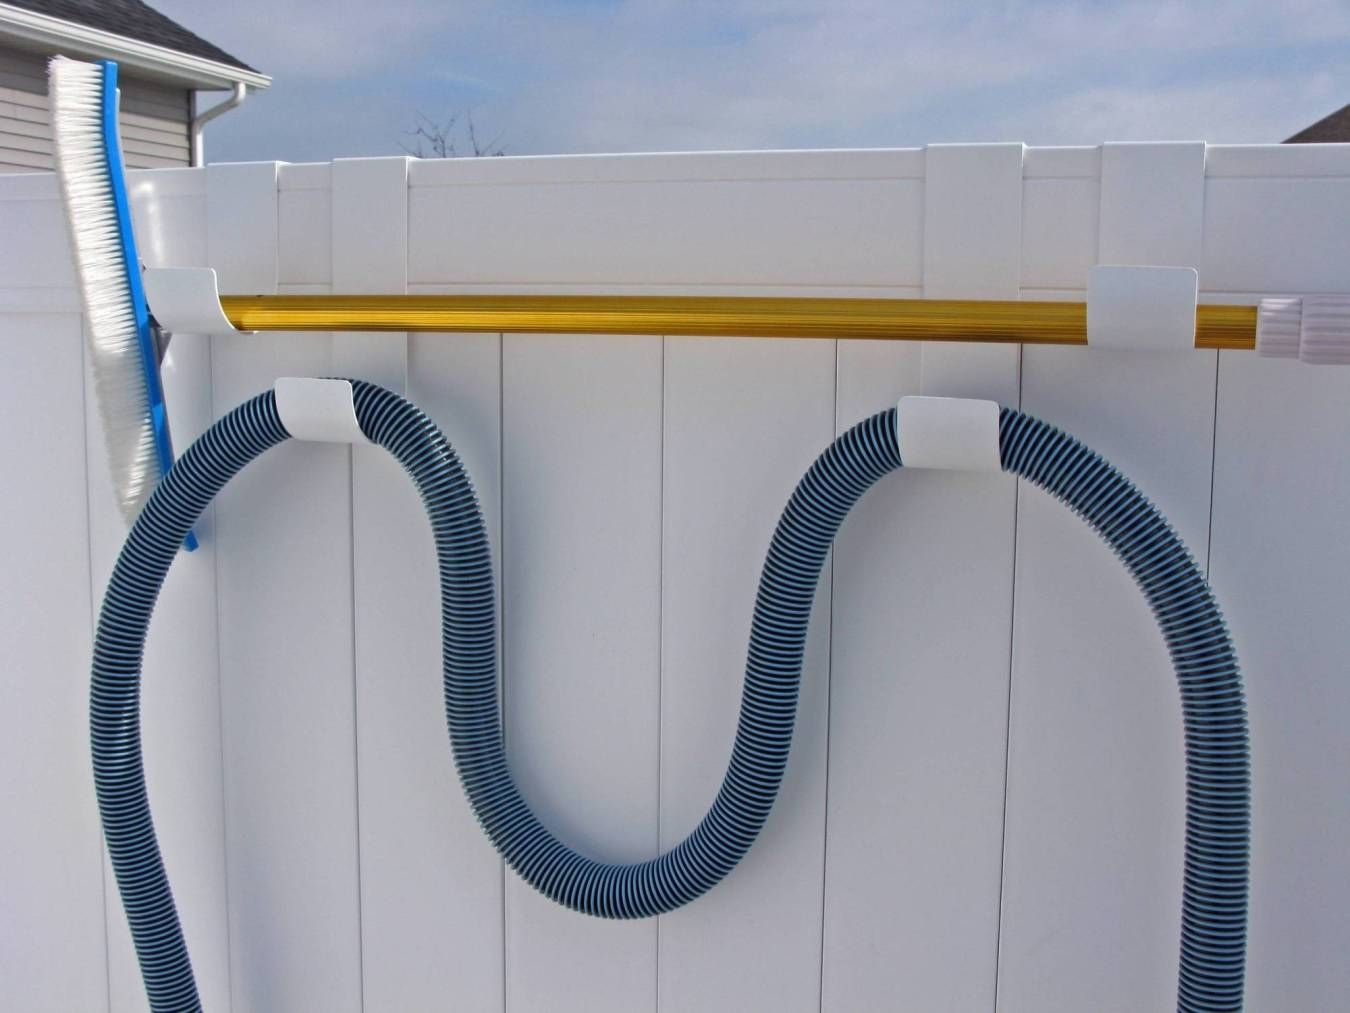 Fence Hook Combo Pack Fits 2 Inch Fence Rails Pool Hoses Pool Accessories Swimming Pools